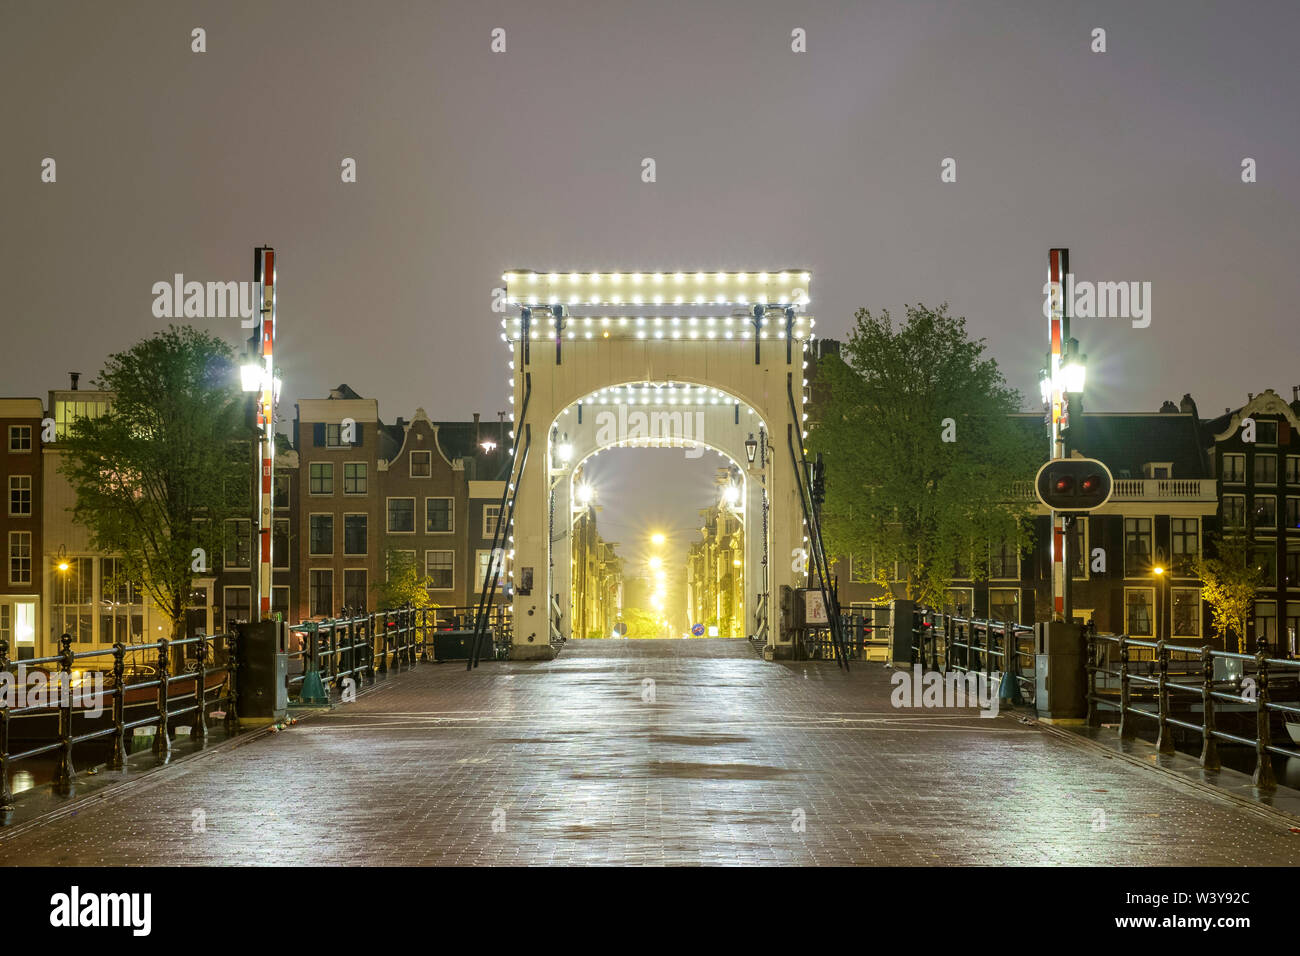 Magere Brug illuminated at night on foggy evening, Amsterdam, North Holland, Netherlands - Stock Image